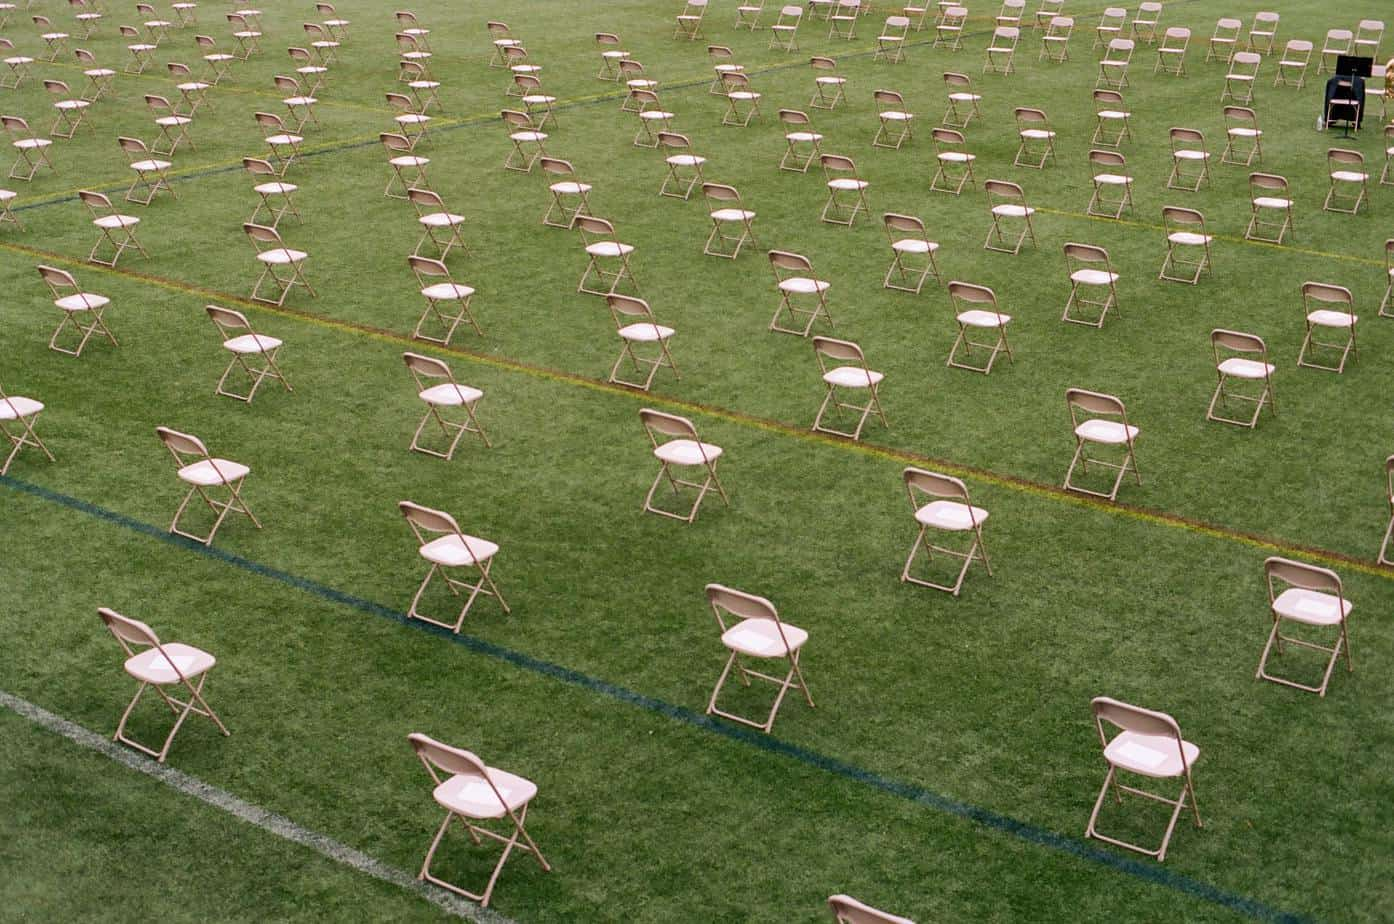 Chairs in a green field conference venue